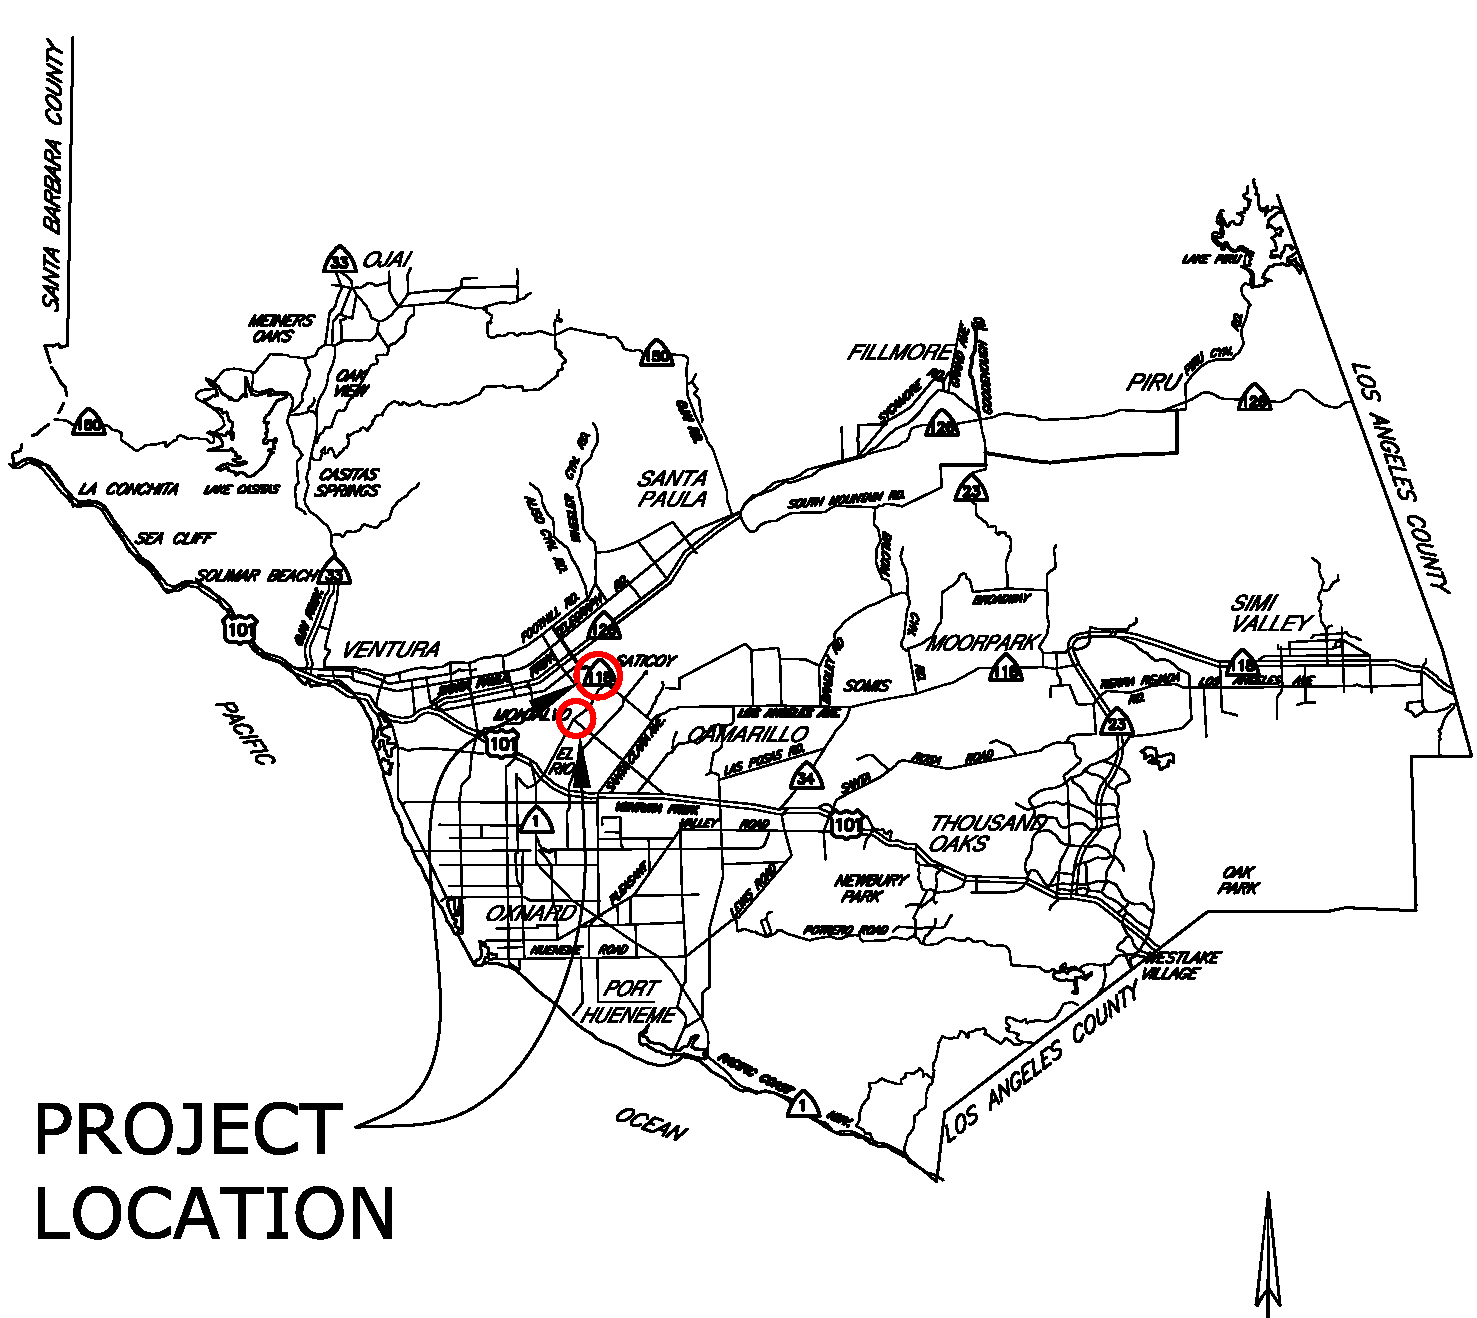 Location map for Bus Pullout/Bus Stop Installations-El Rio Saticoy Areas